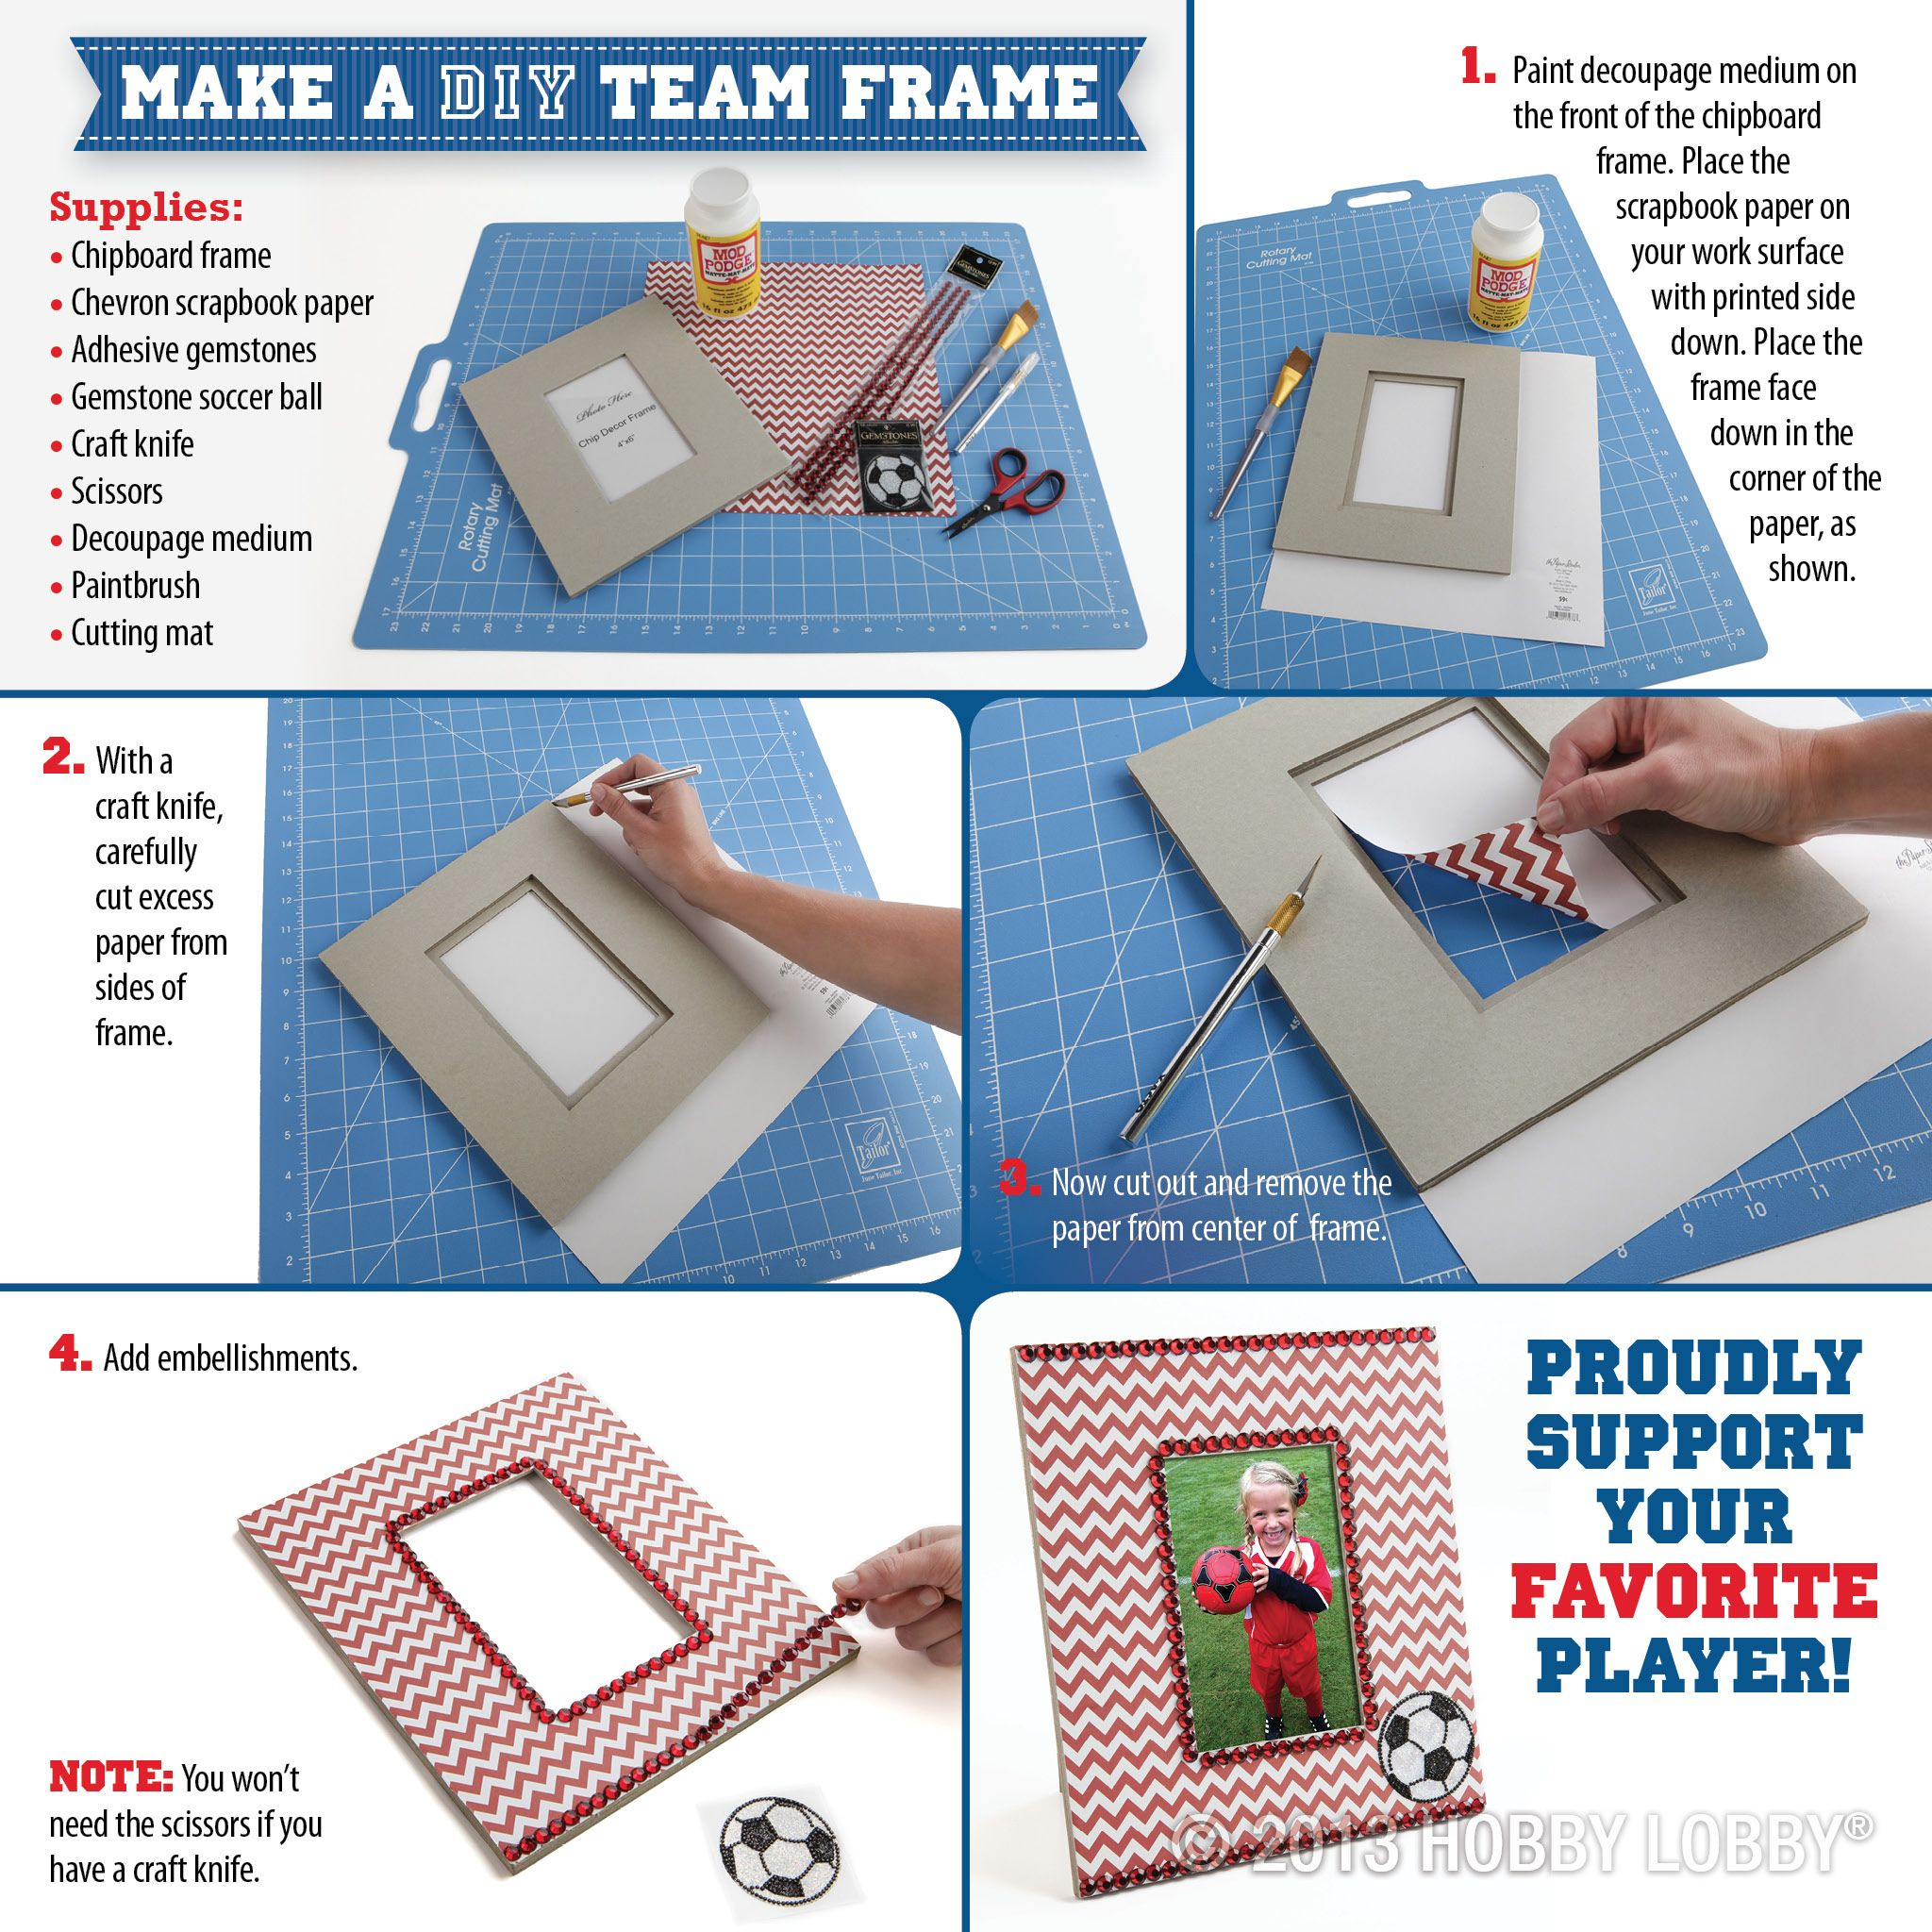 Make a diy sports team frame and cheer on your favorite player make a diy sports team frame and cheer on your favorite player jeuxipadfo Images